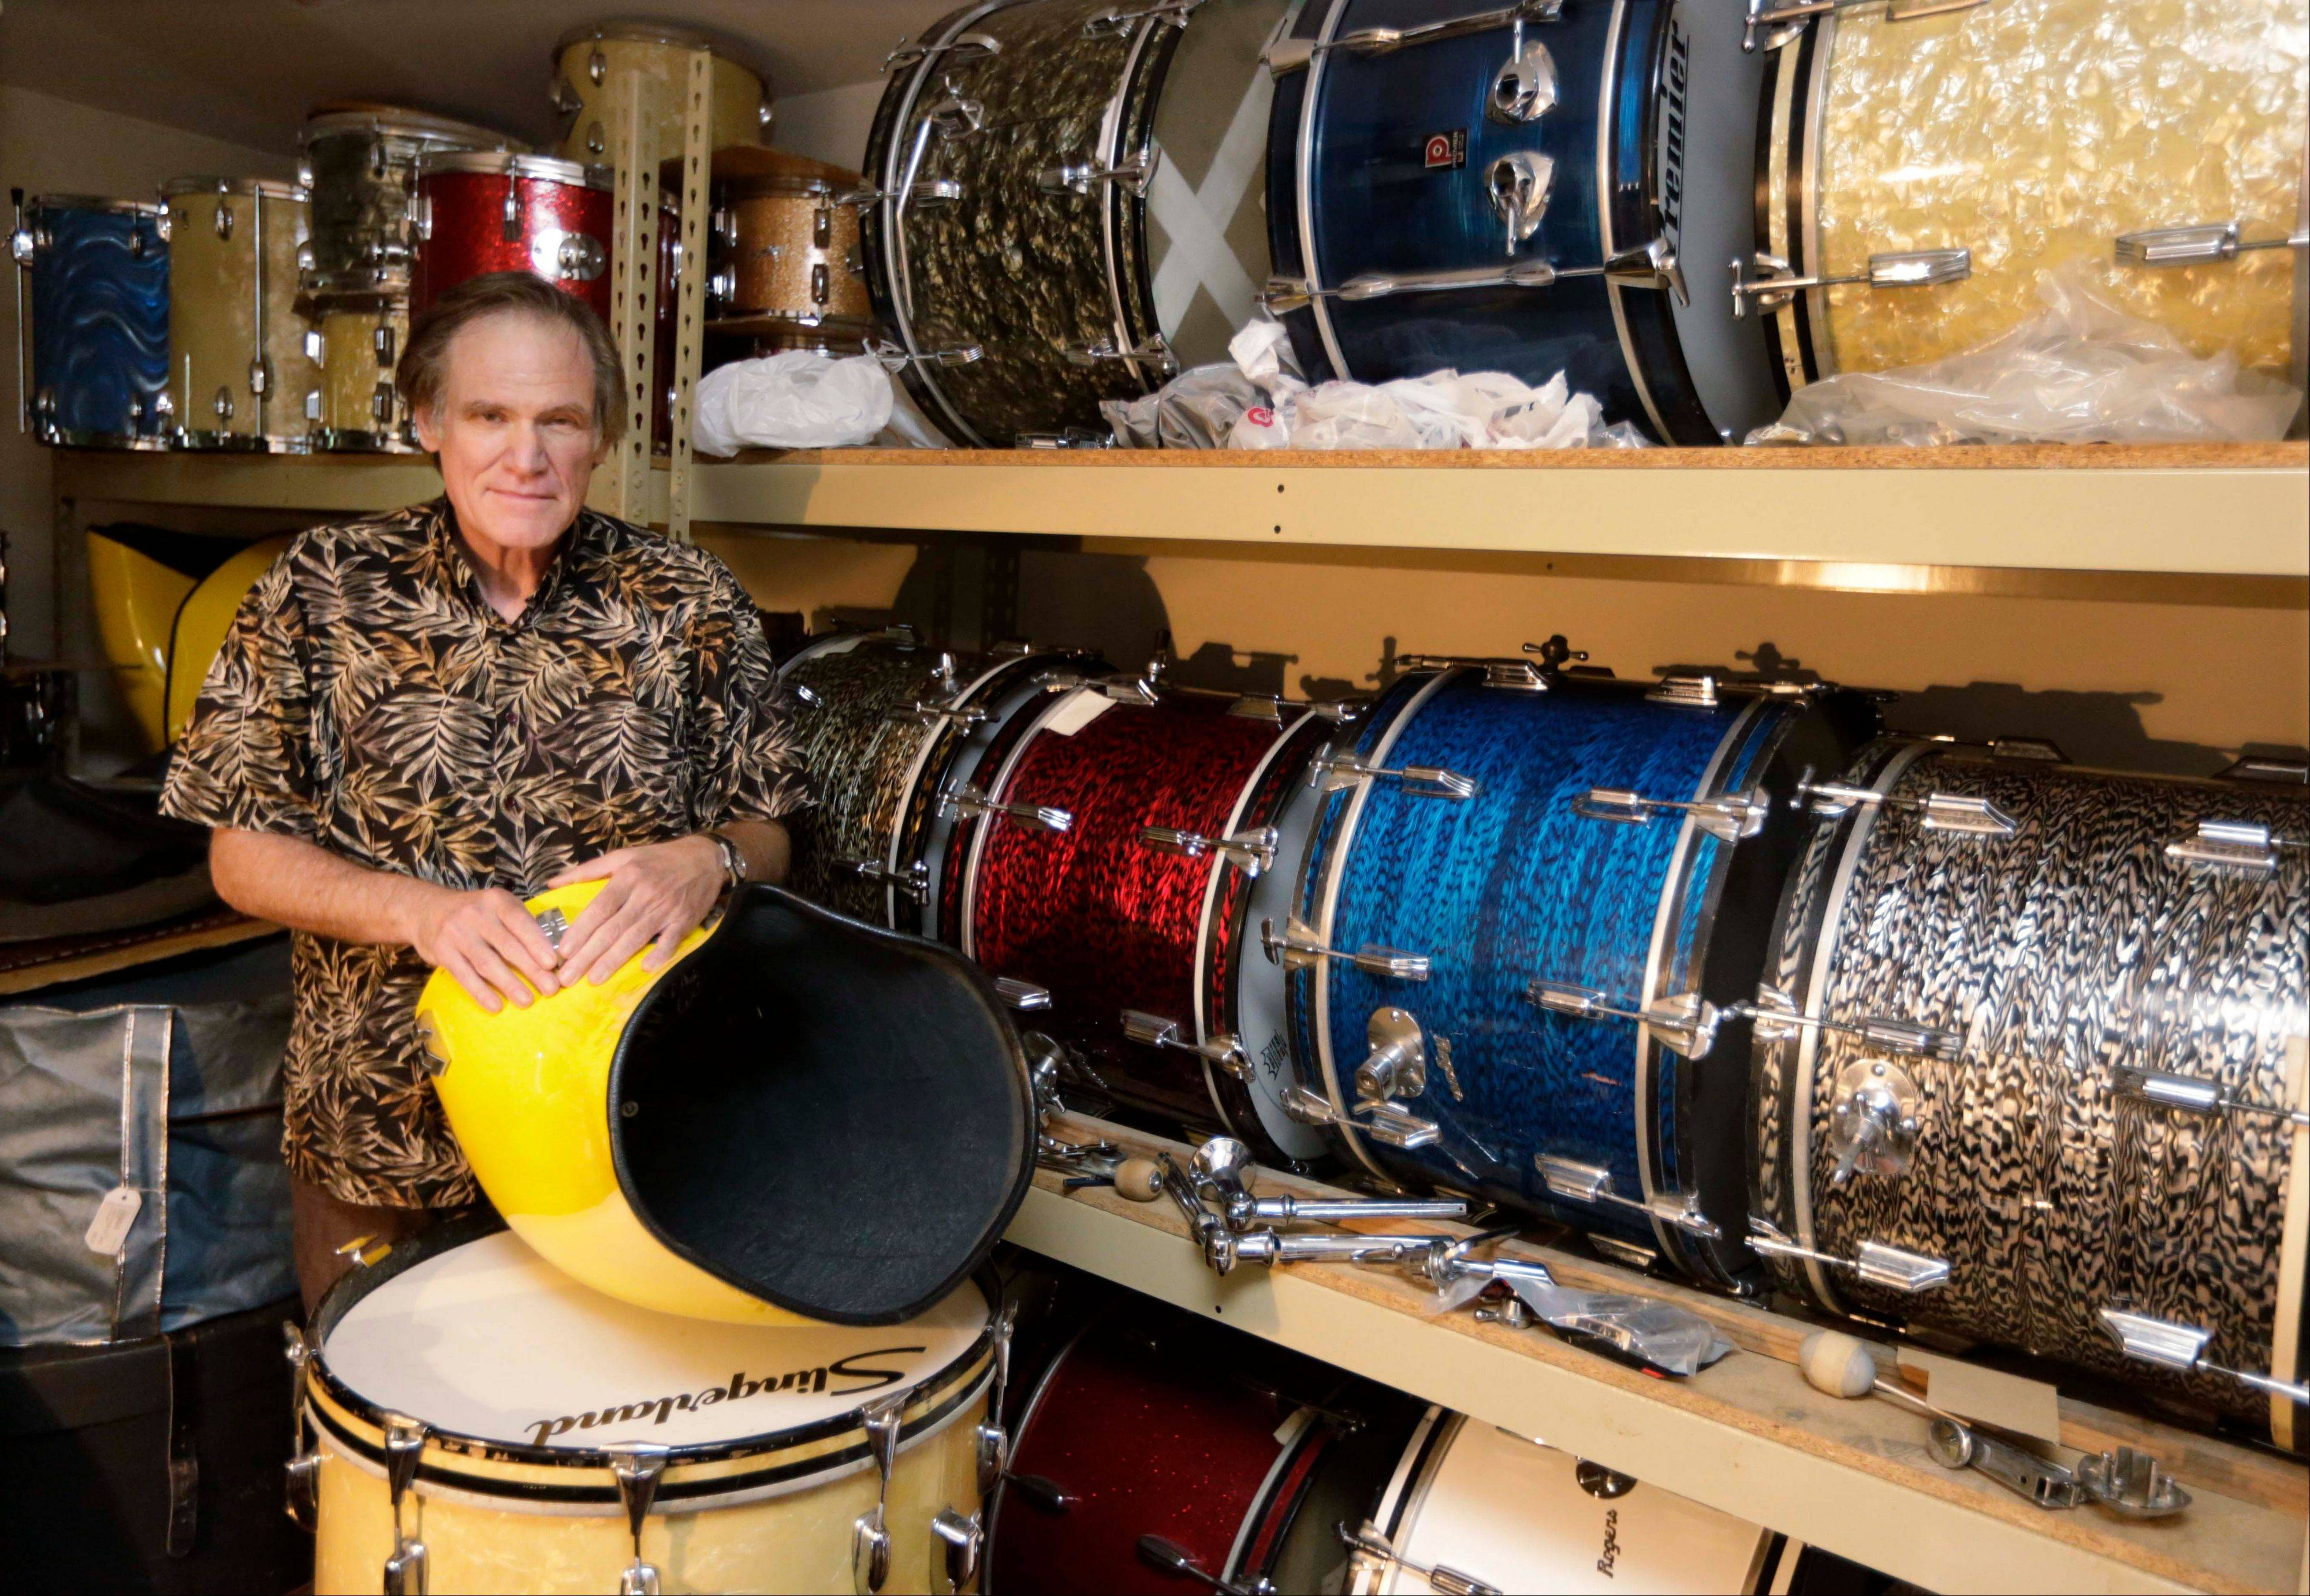 James Glay poses with his collection of vintage drums in Arlington Heights. Every passing month and unanswered resume dimmed Glay's optimism more. With no job in sight, he joined a growing number of older people and created his own.